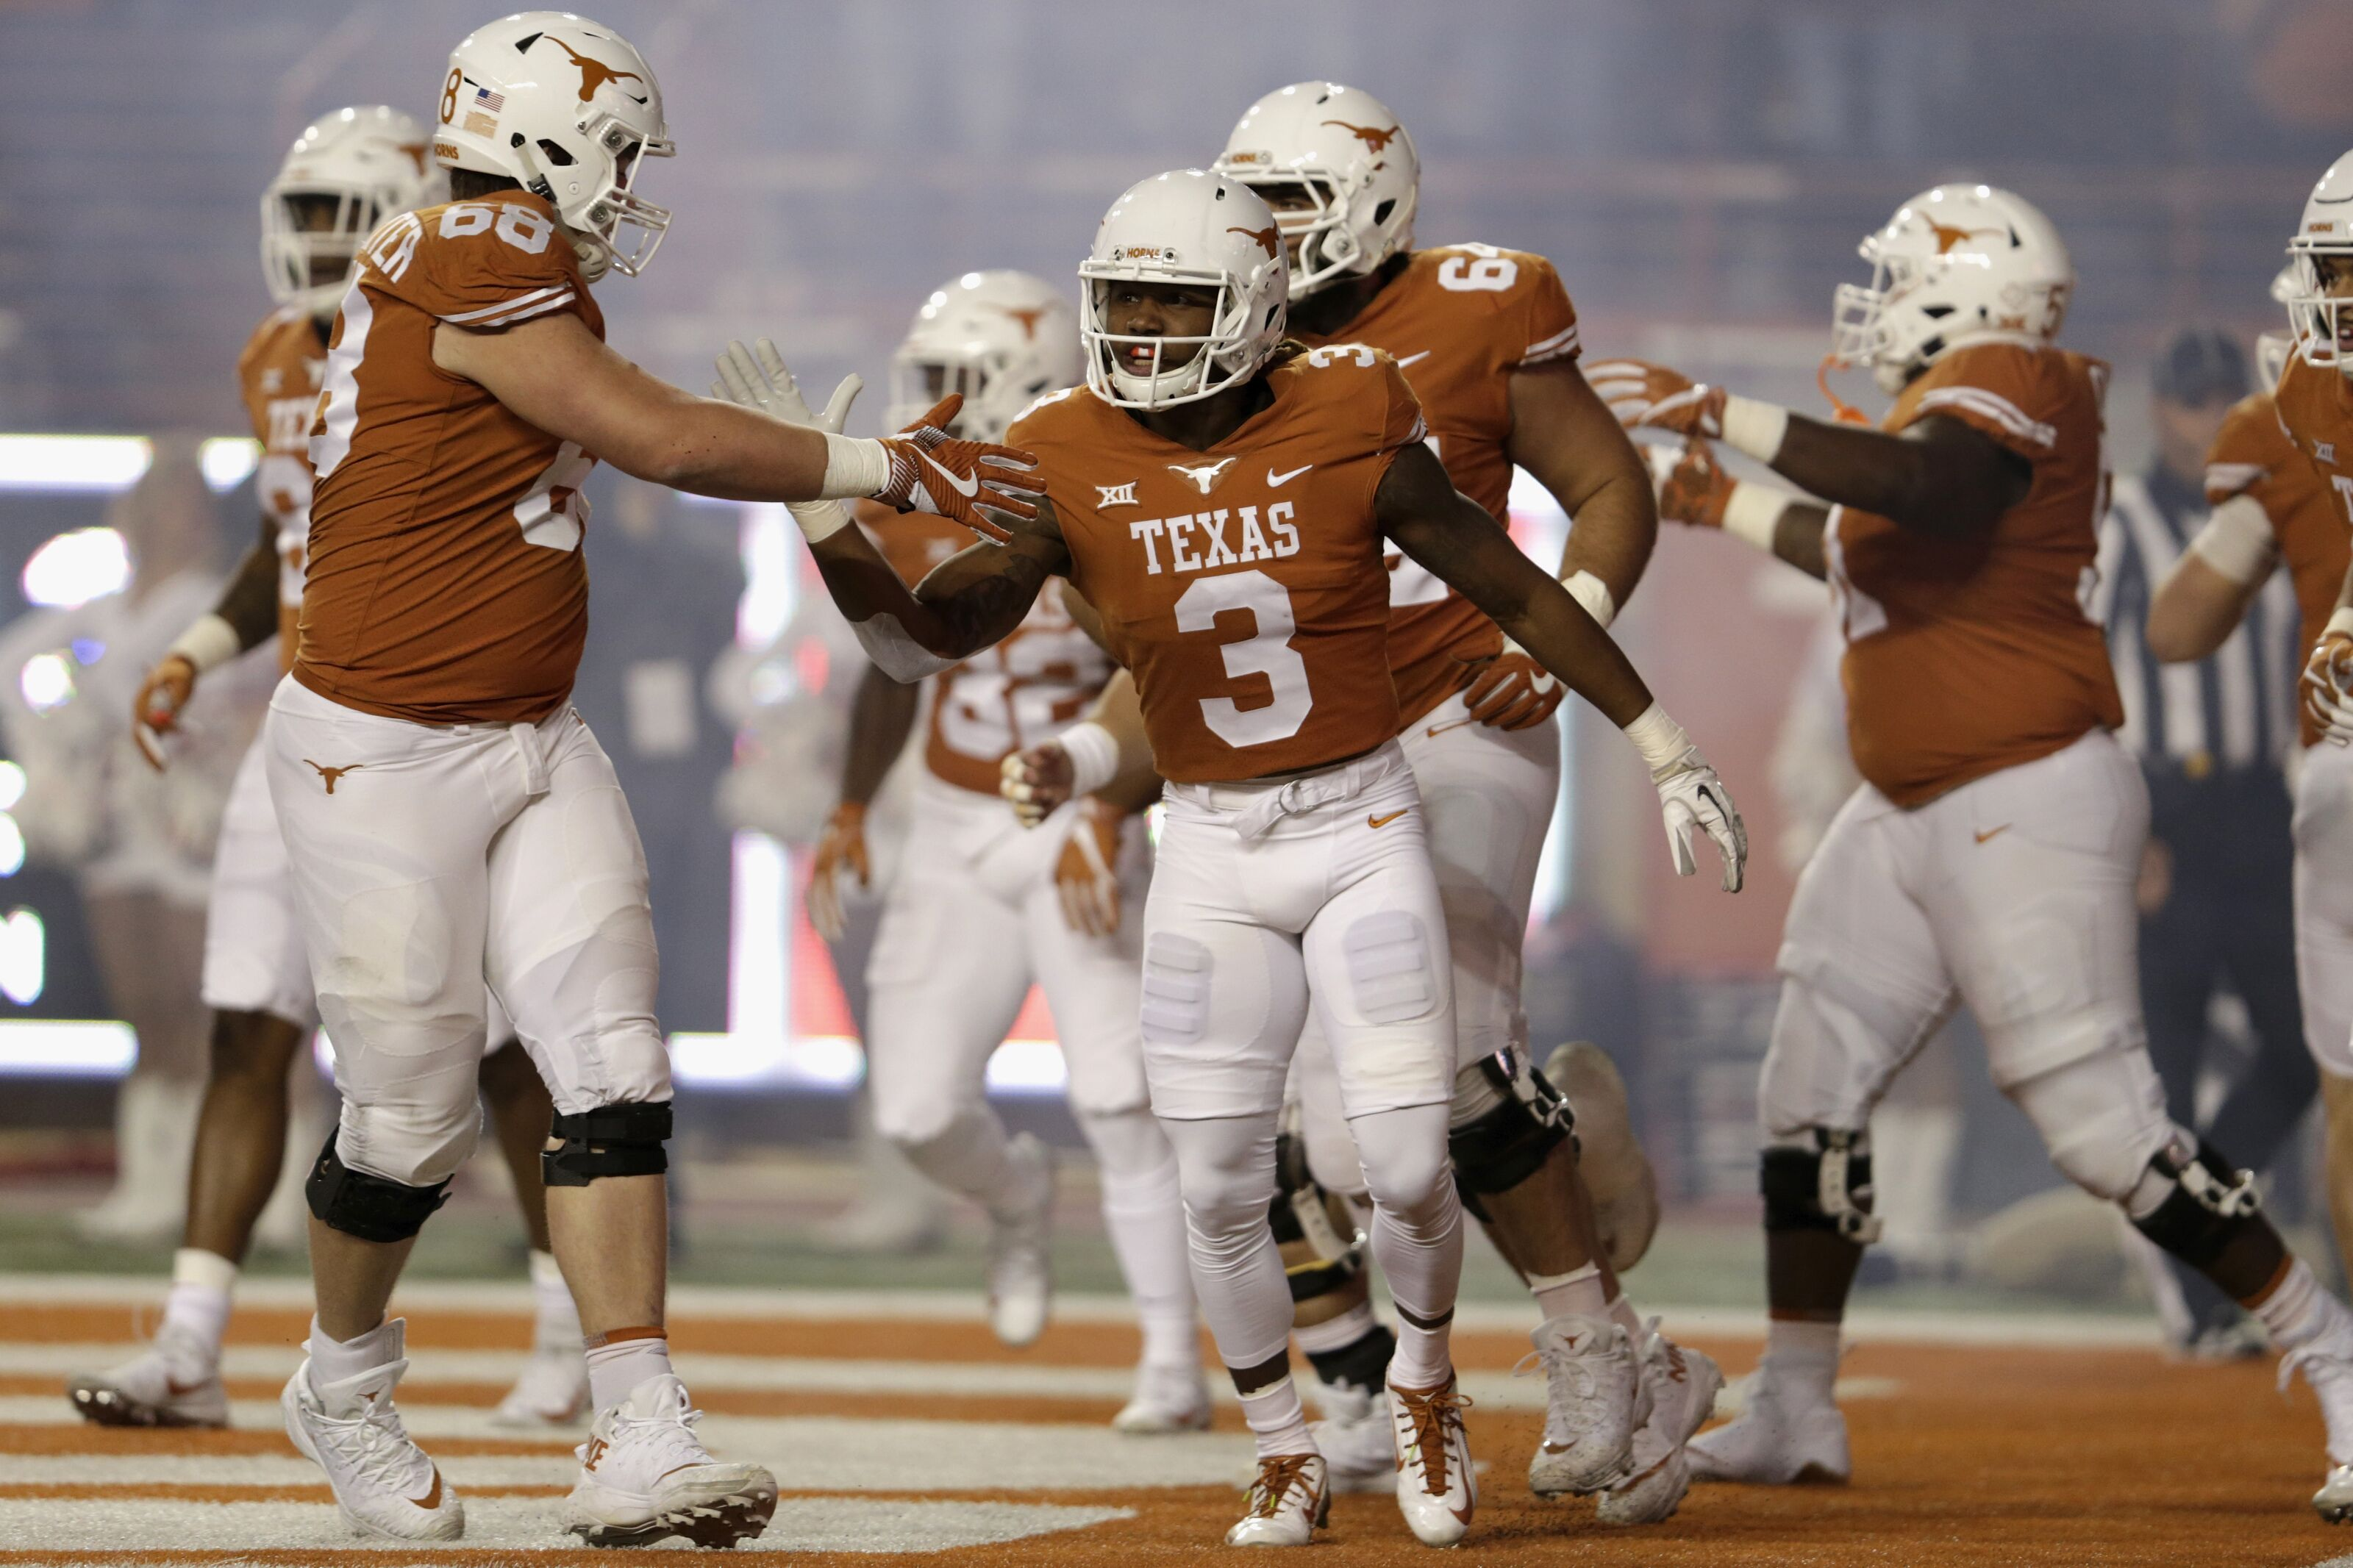 Texas Longhorns Football: News, Recruiting & Rumors